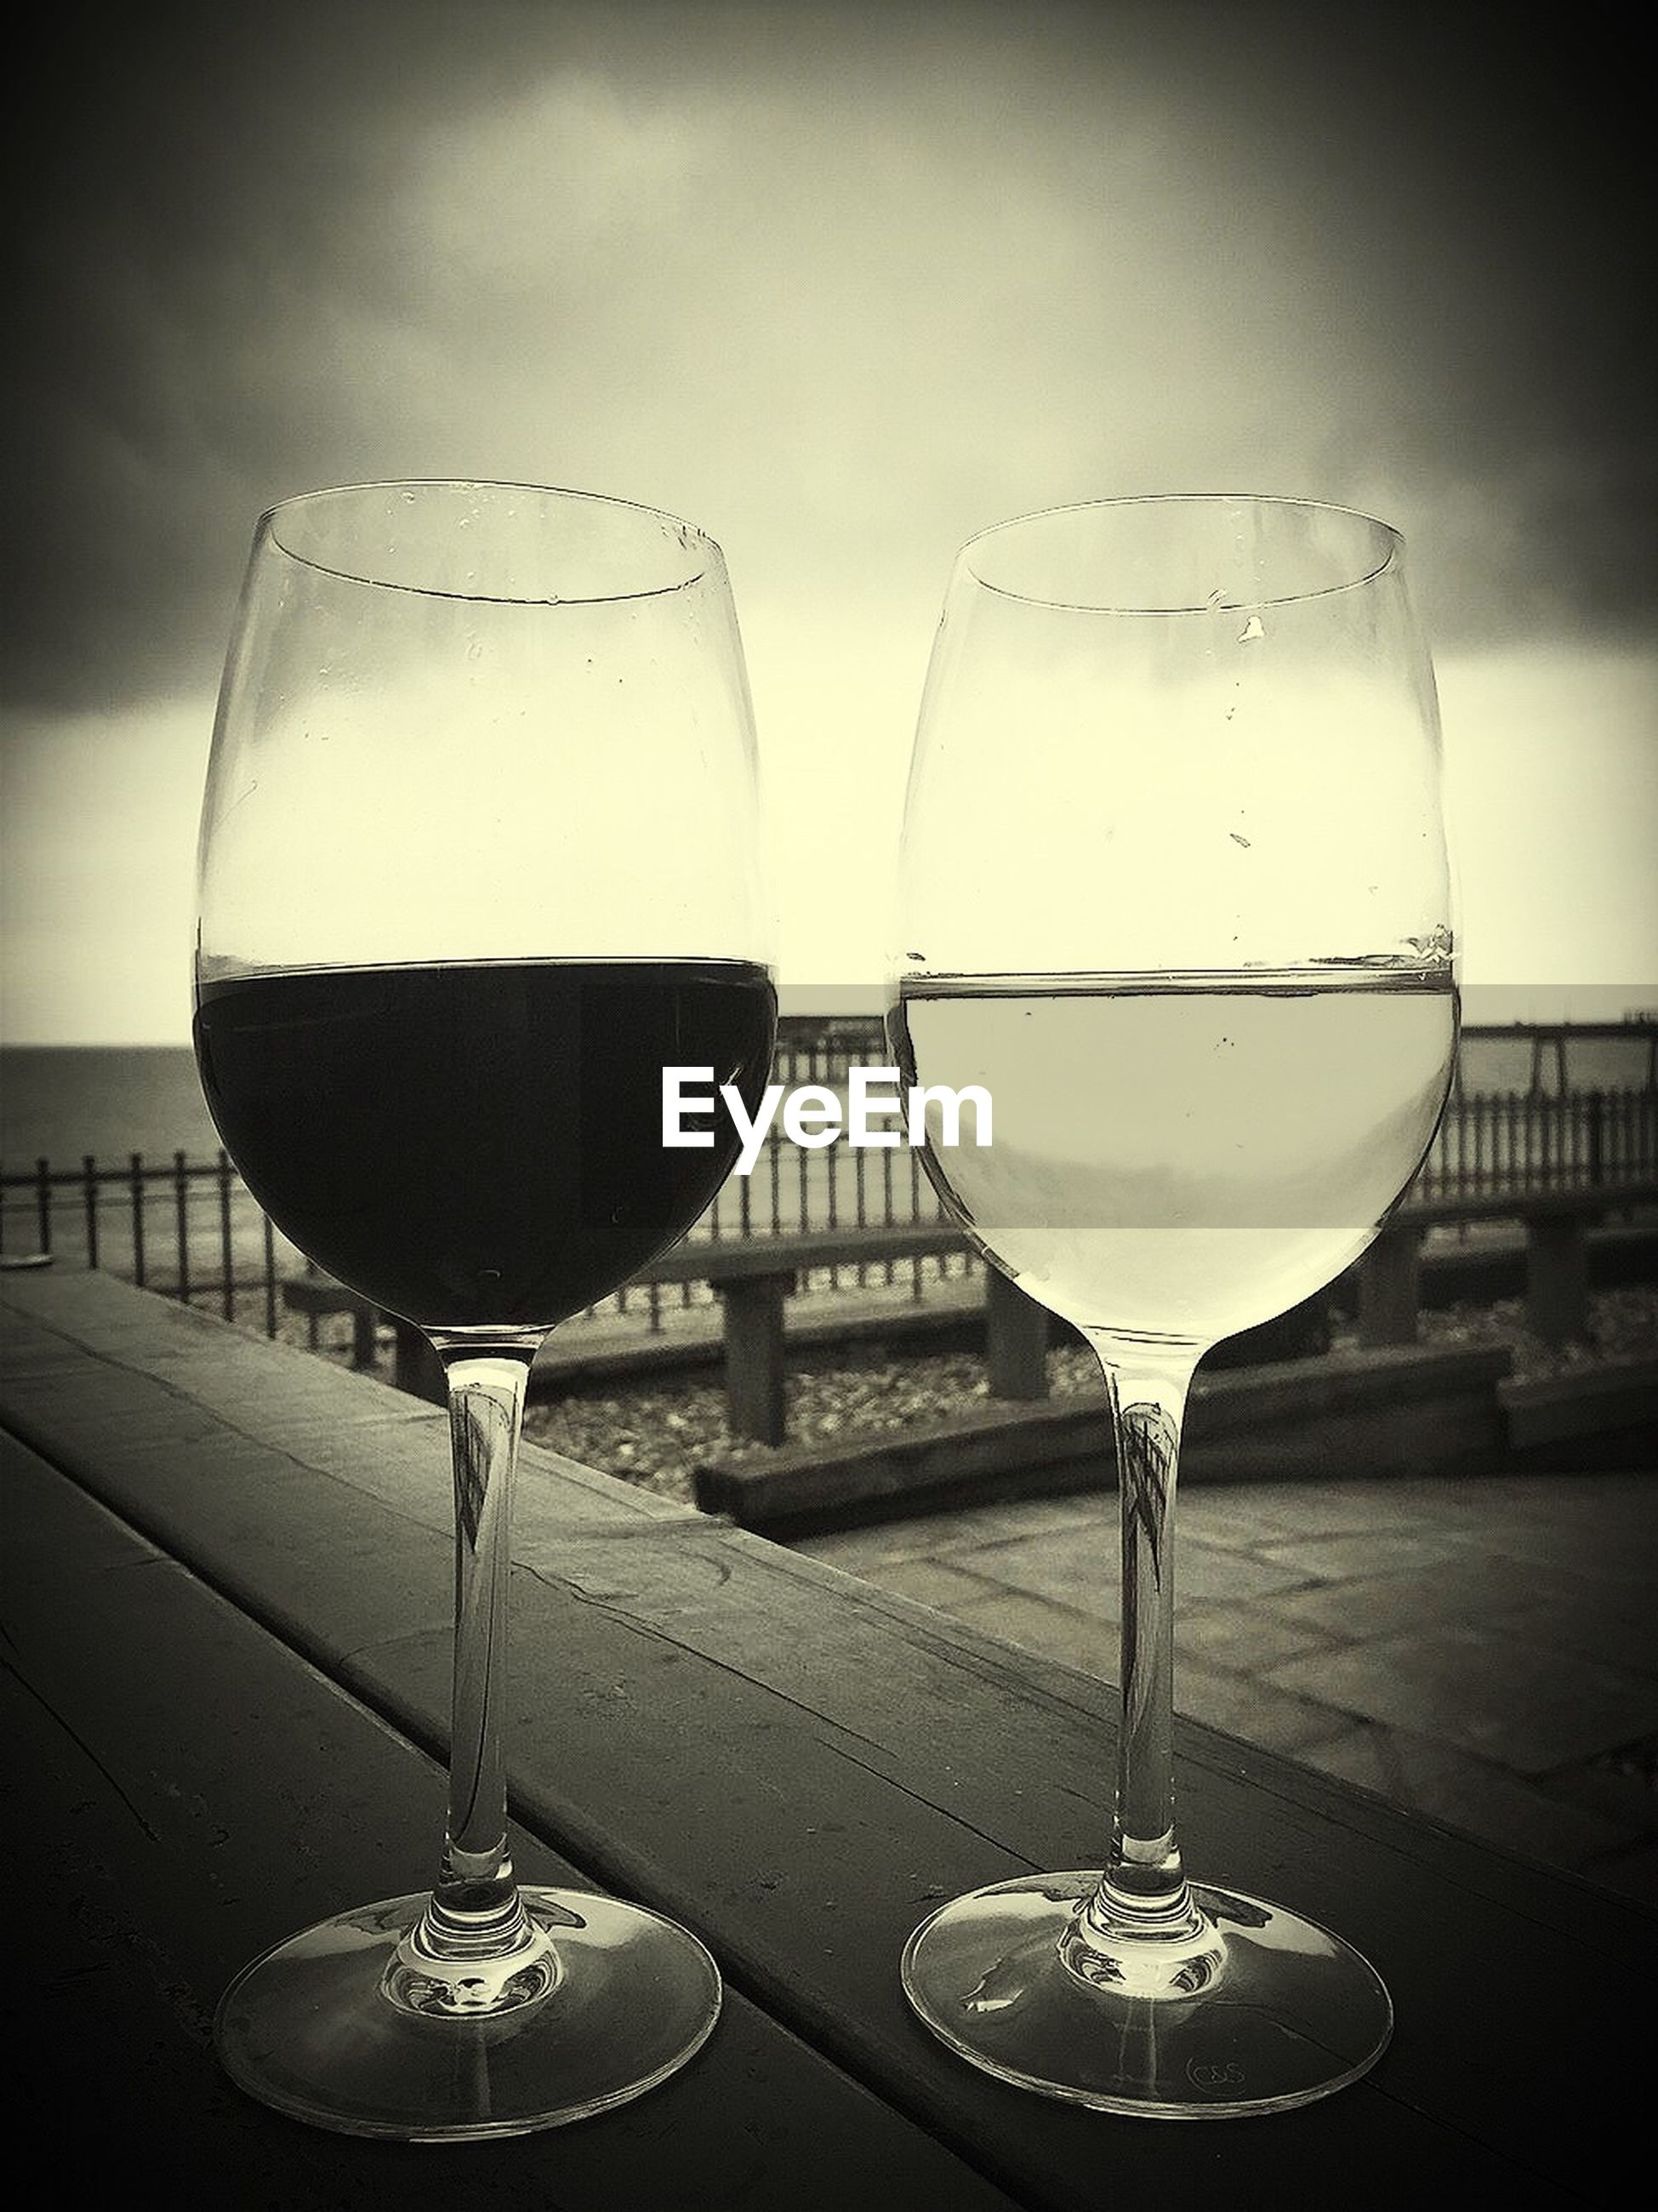 indoors, transparent, glass - material, sphere, wineglass, close-up, wine, food and drink, sky, drinking glass, mid-air, focus on foreground, drink, reflection, alcohol, still life, glass, refreshment, flying, lighting equipment